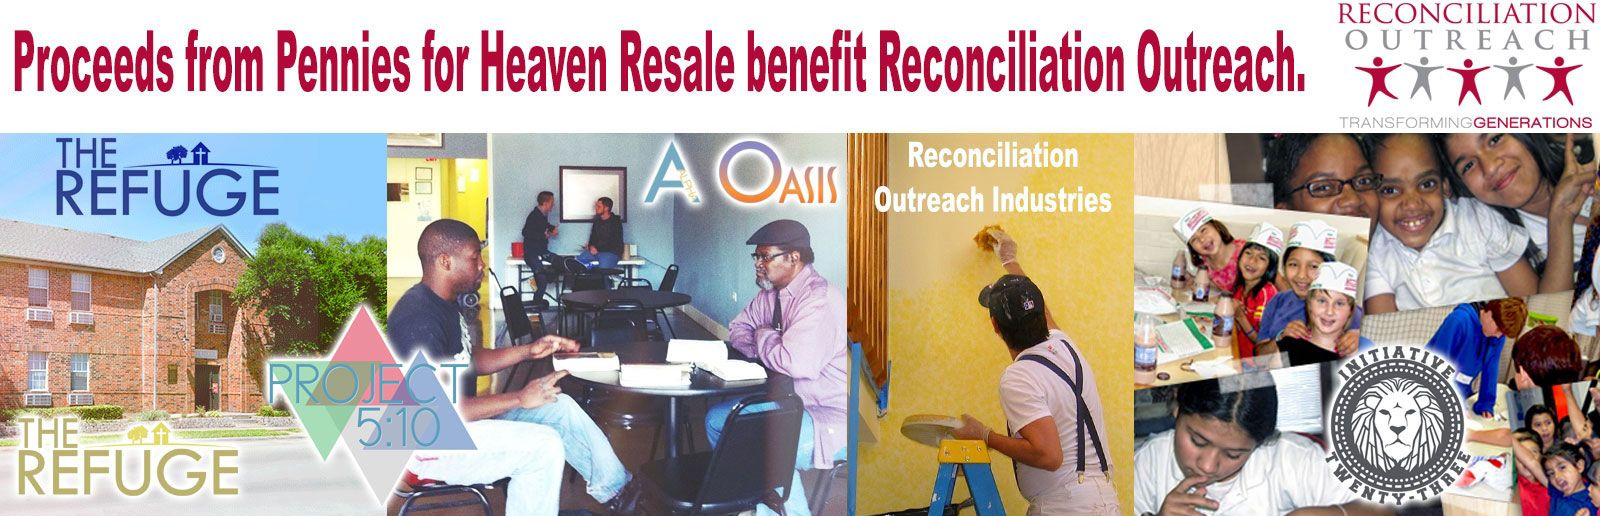 reconciliation-outreach